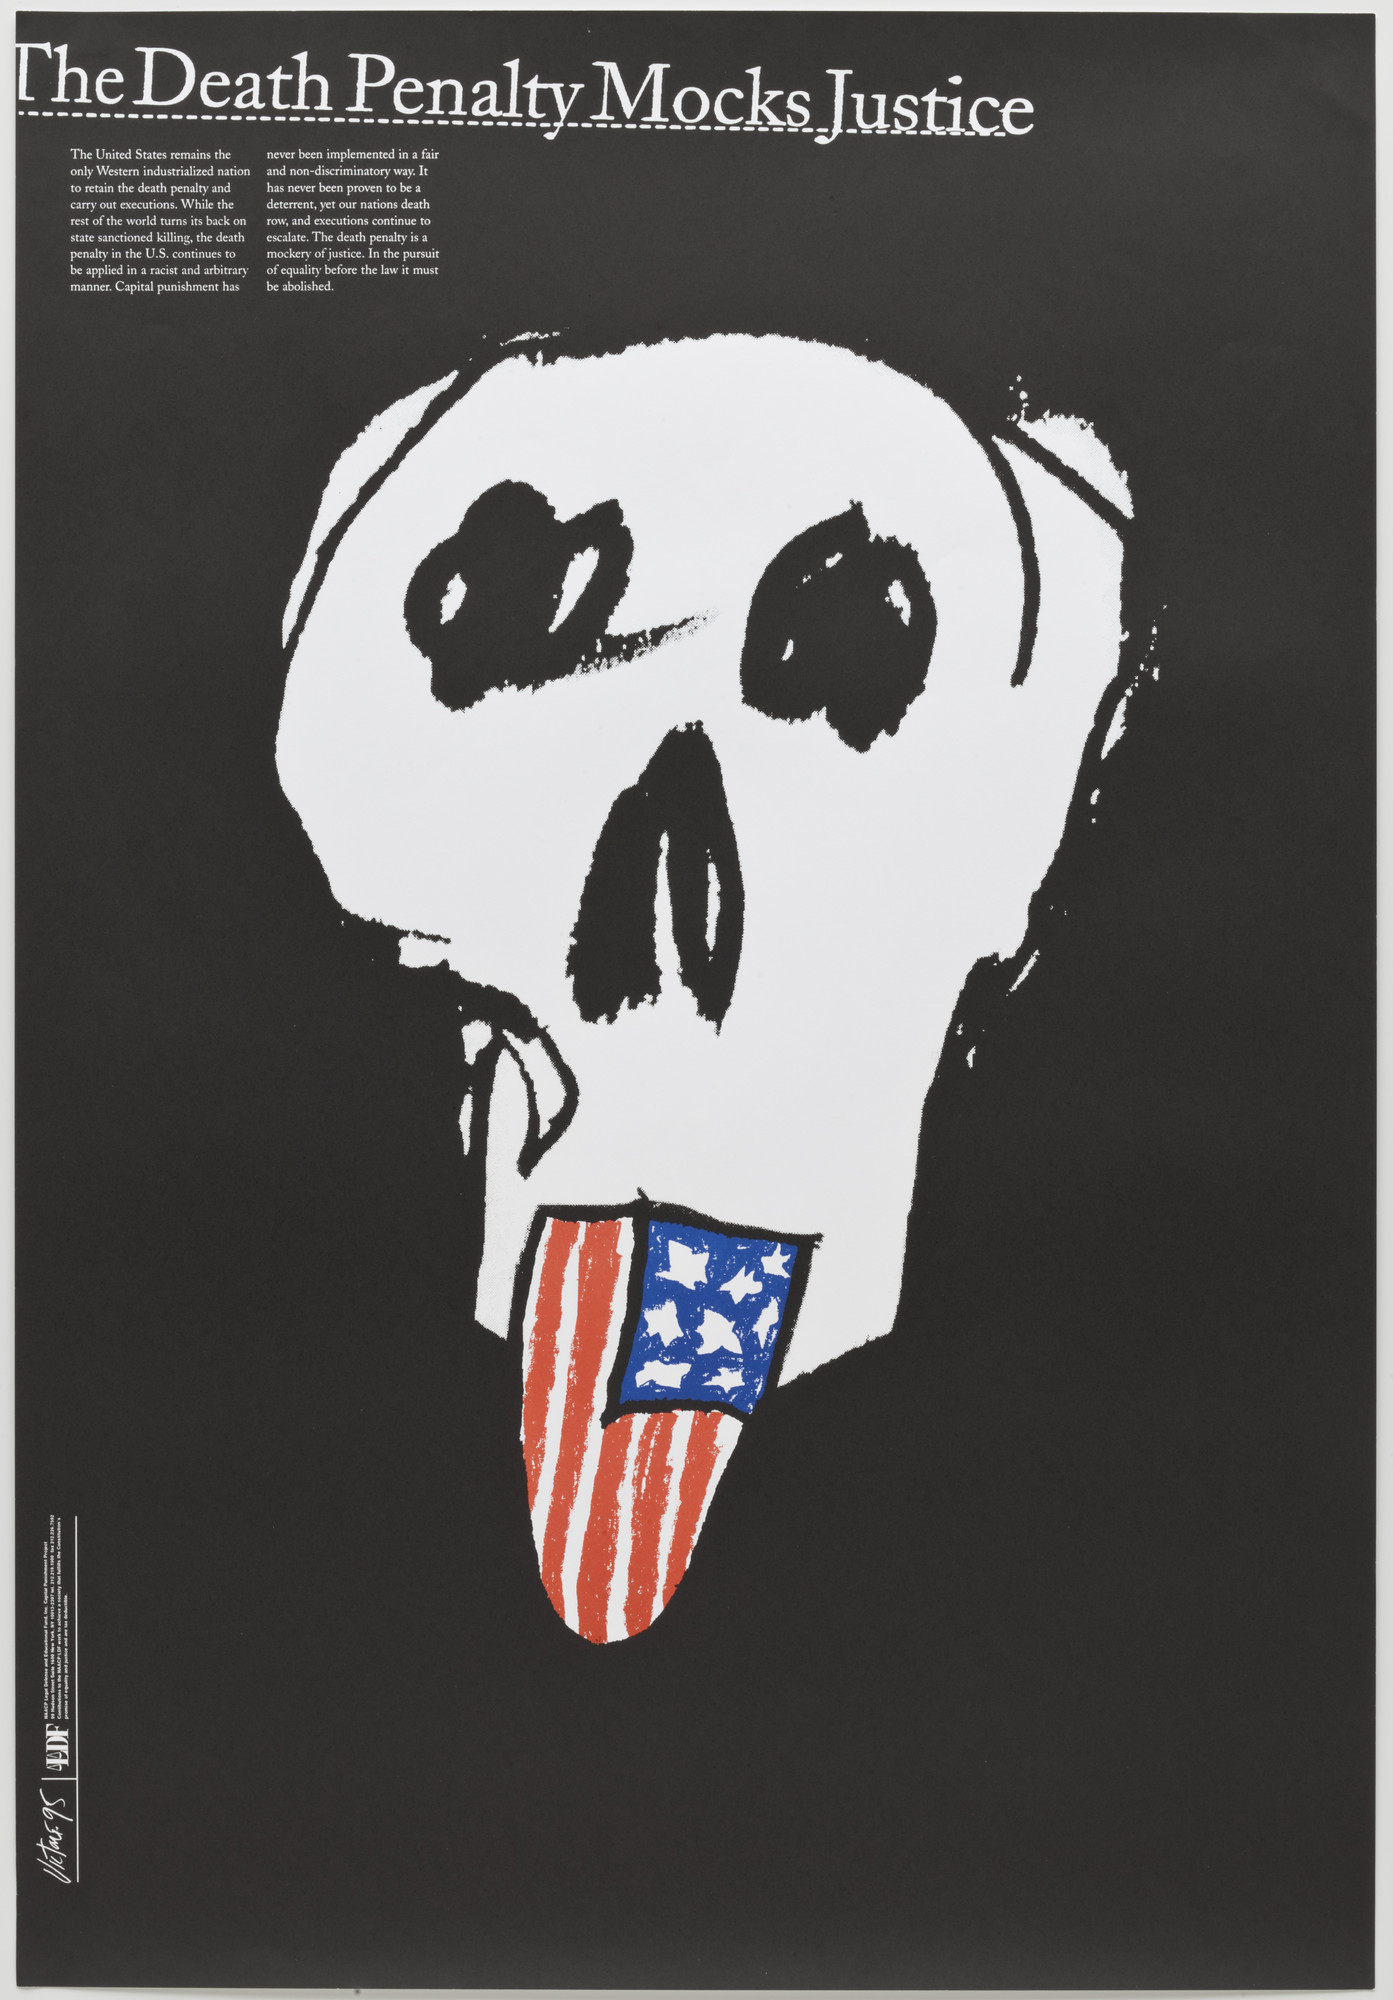 James Victore. The Death Penalty Mocks Justice. 1995